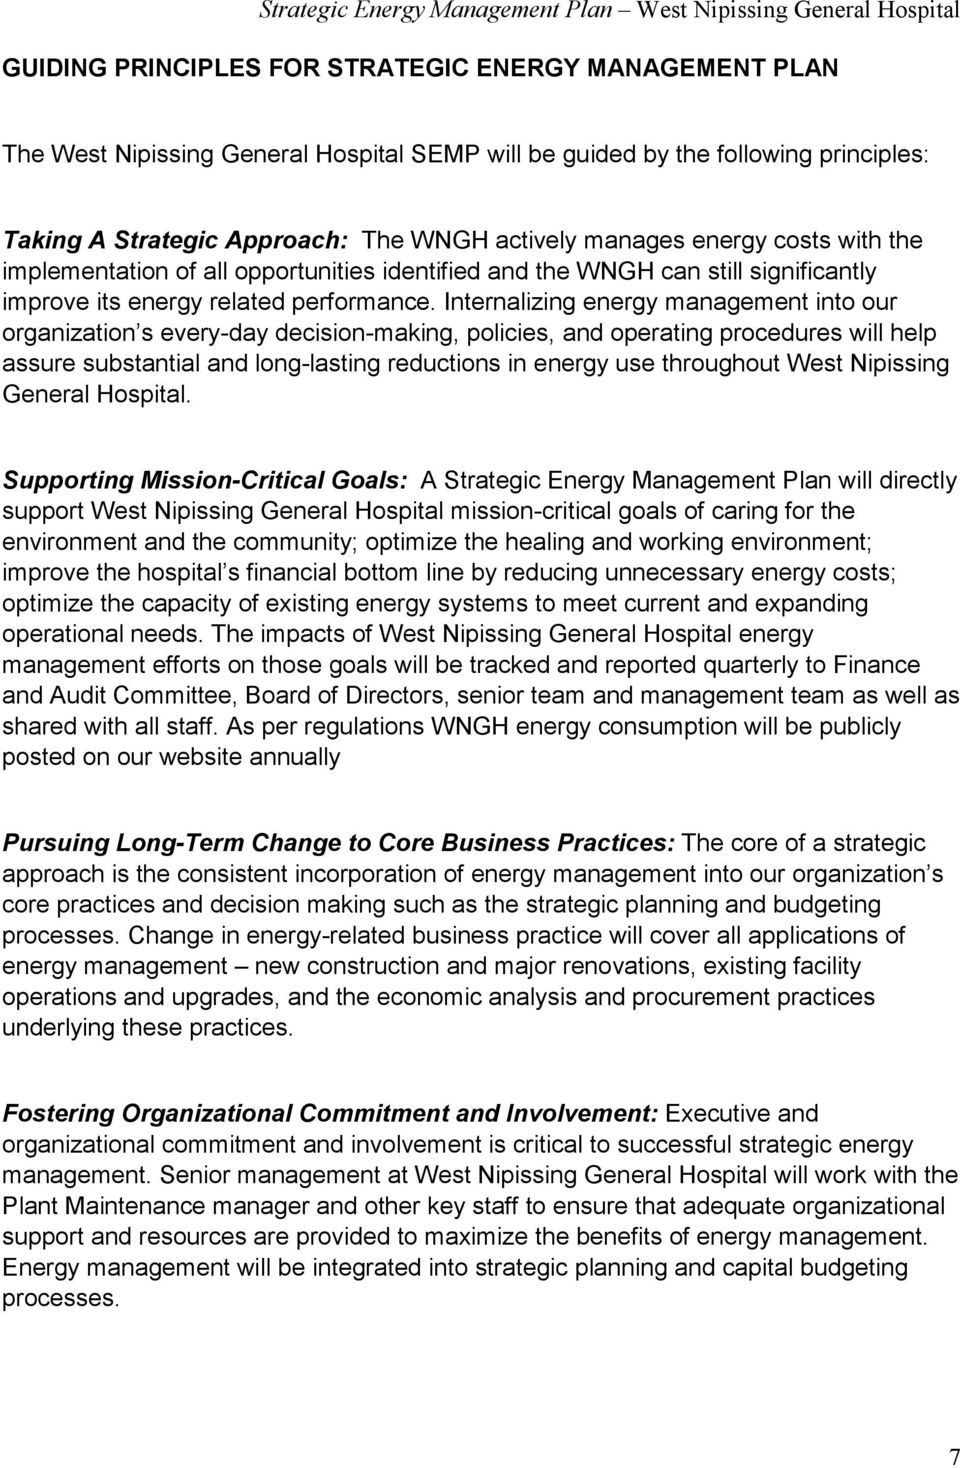 Internalizing energy management into our organization s every-day decision-making, policies, and operating procedures will help assure substantial and long-lasting reductions in energy use throughout